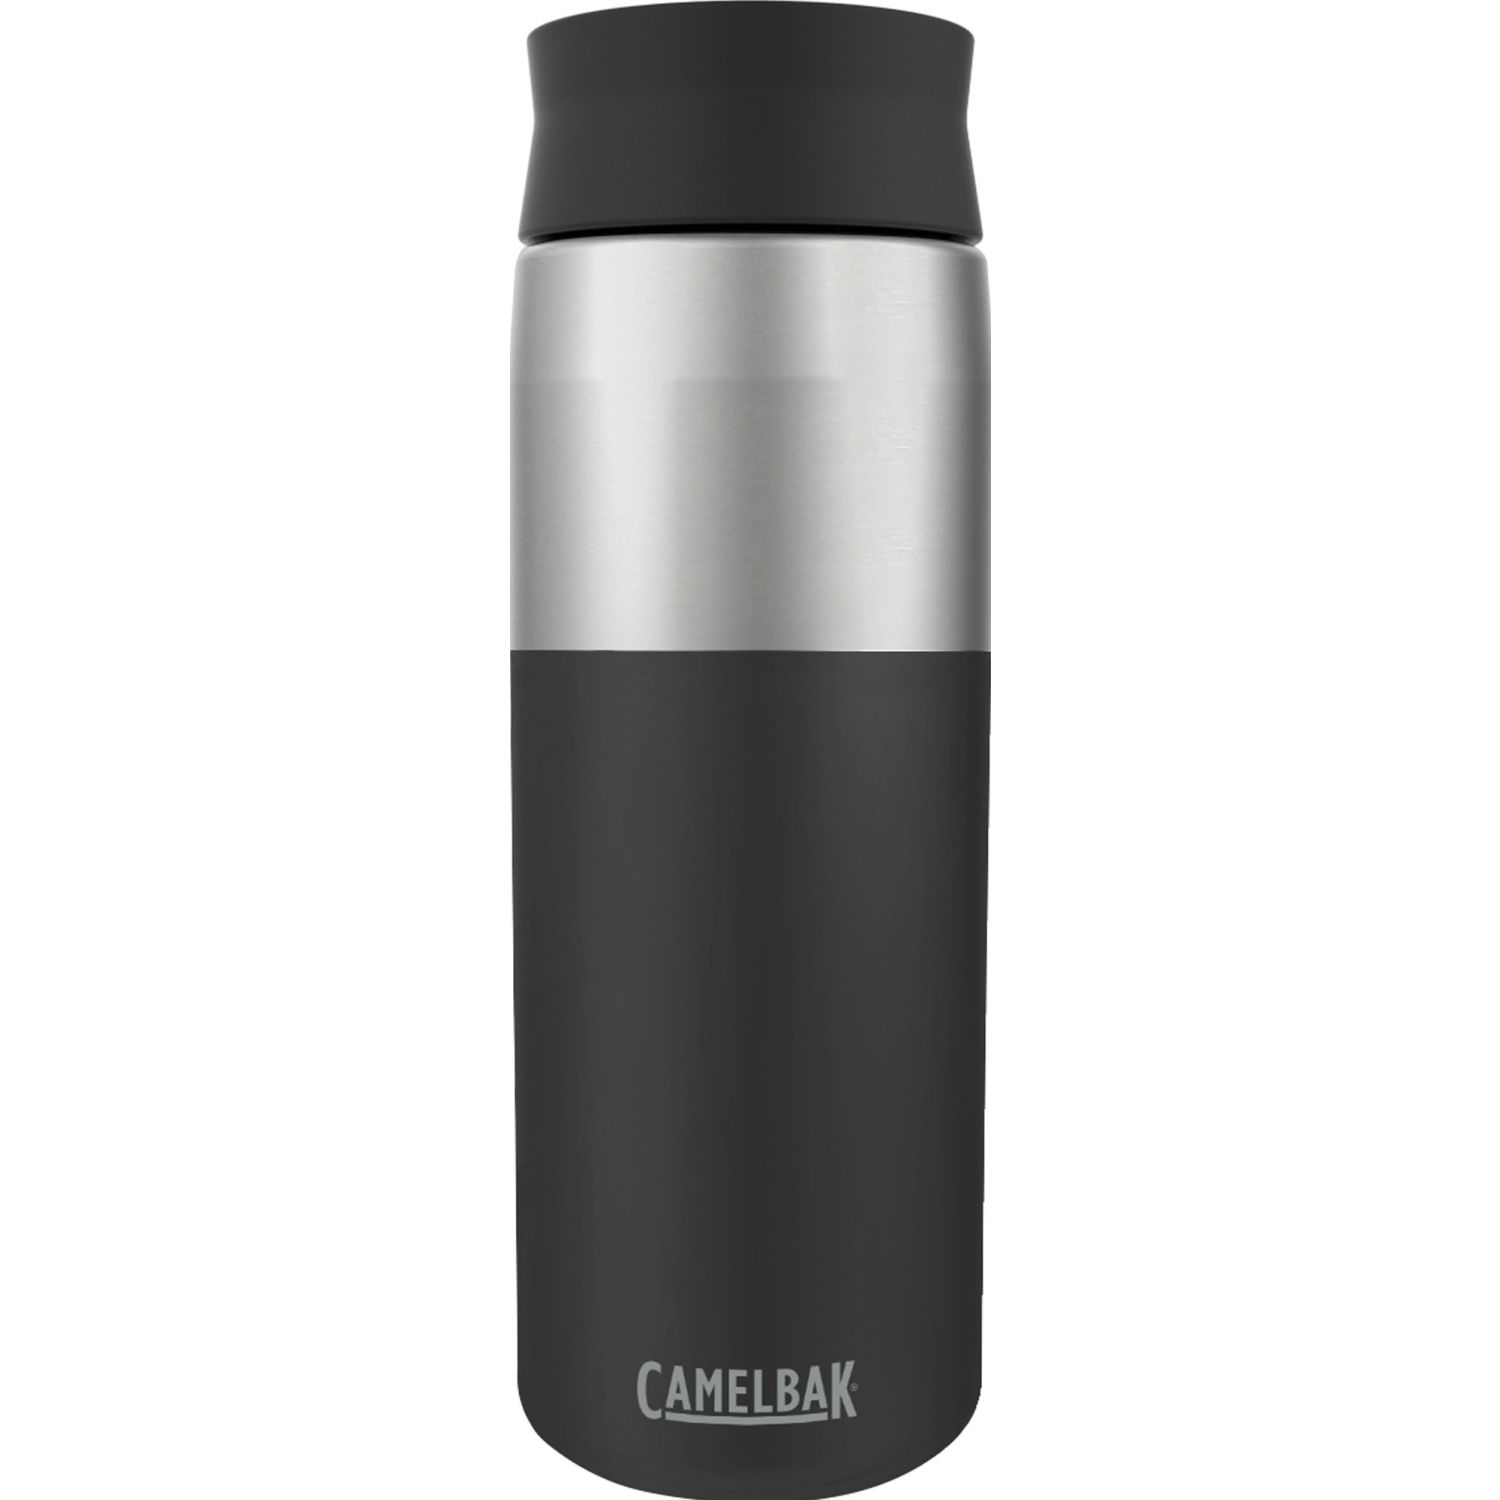 CAMELBAK HOT CAP VACUUM STAINLESS 20OZ Negro Botellas de Agua